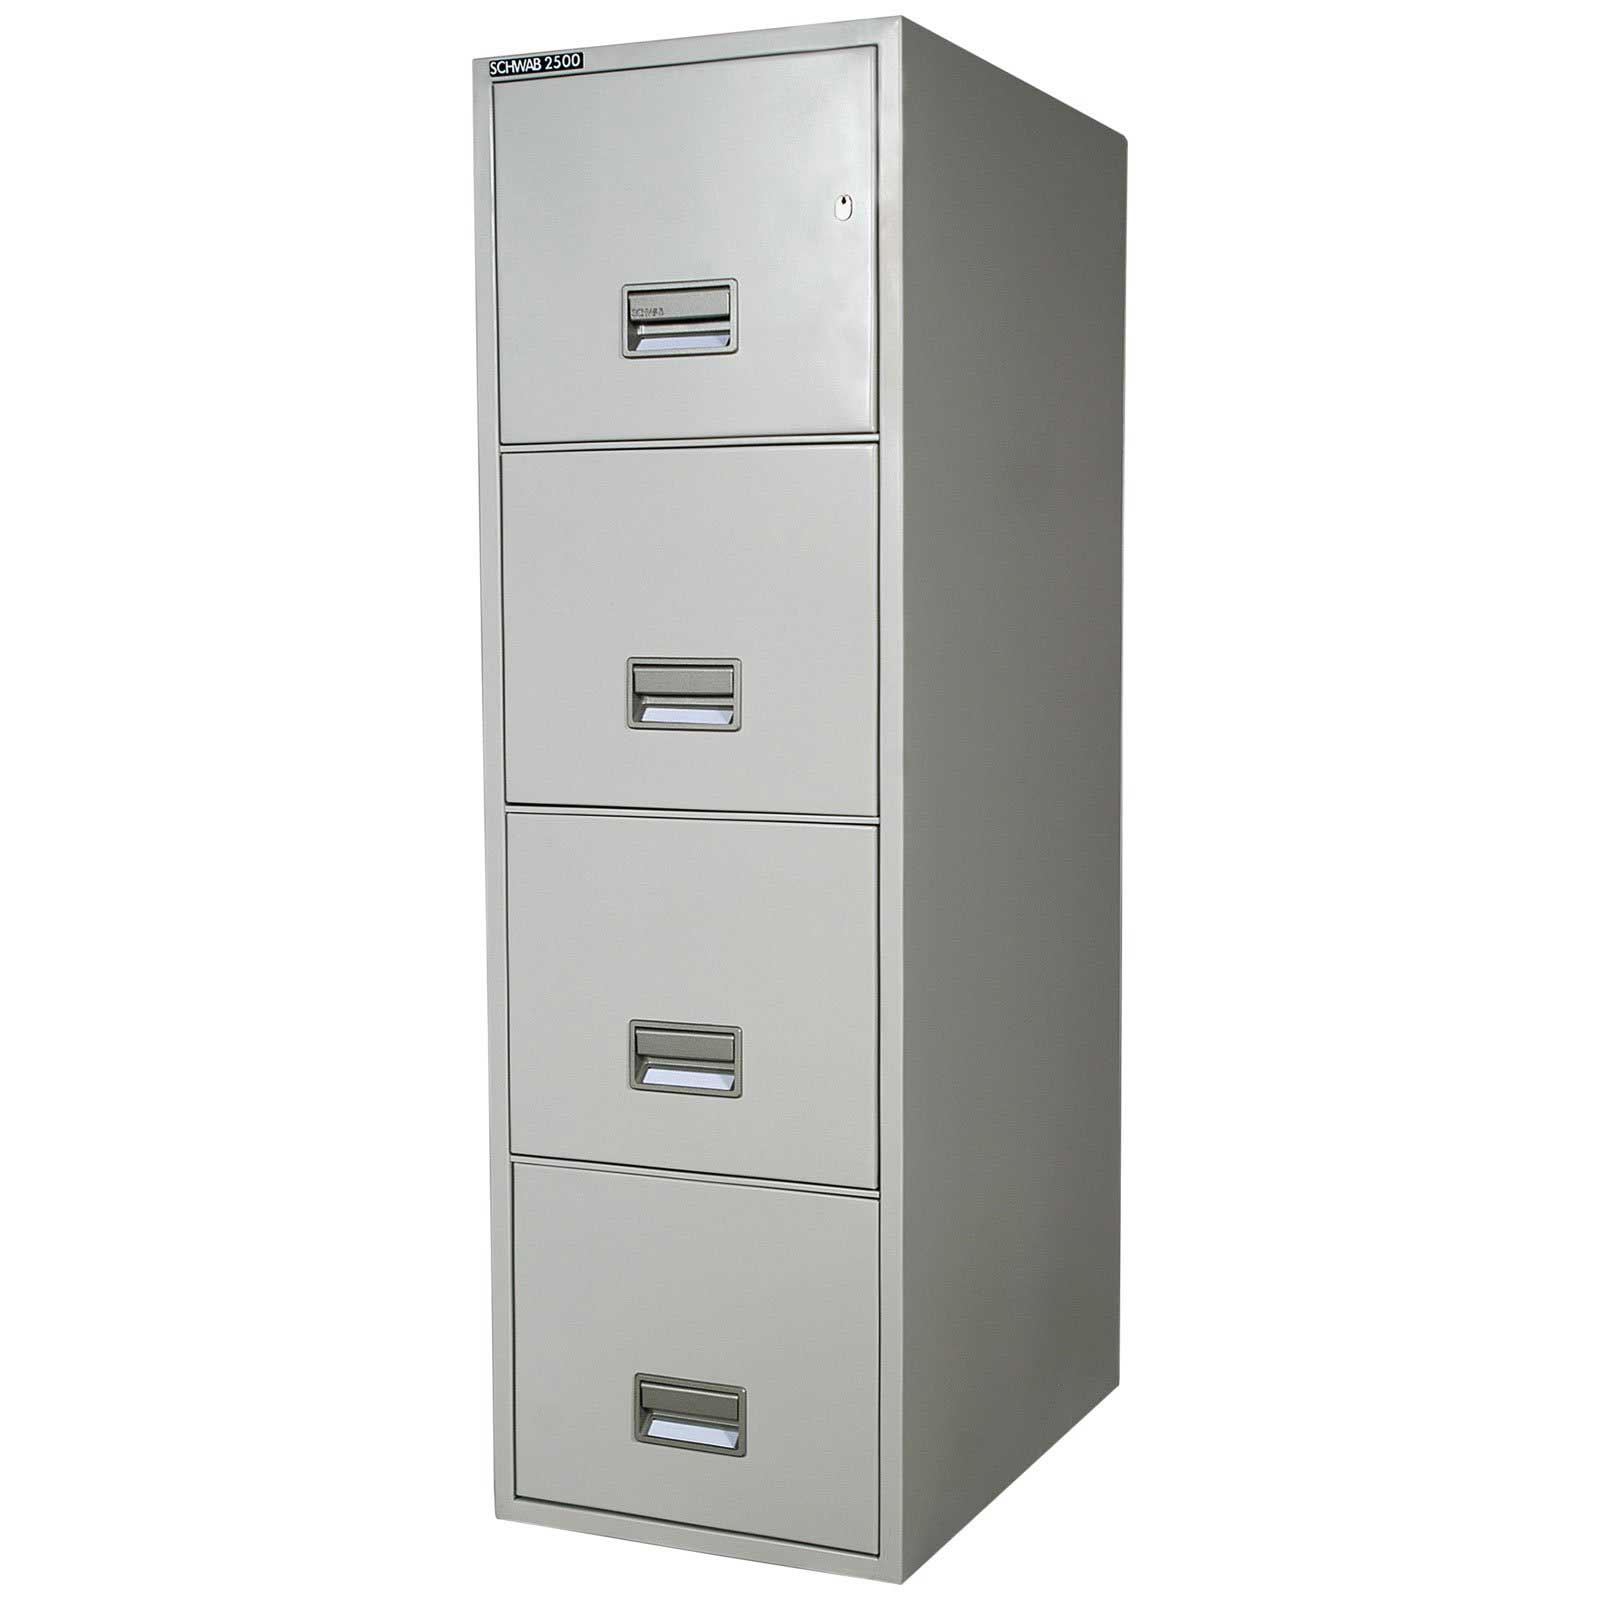 Chic fireproof filing cabinets for office furniture ideas with fireproof file cabinets